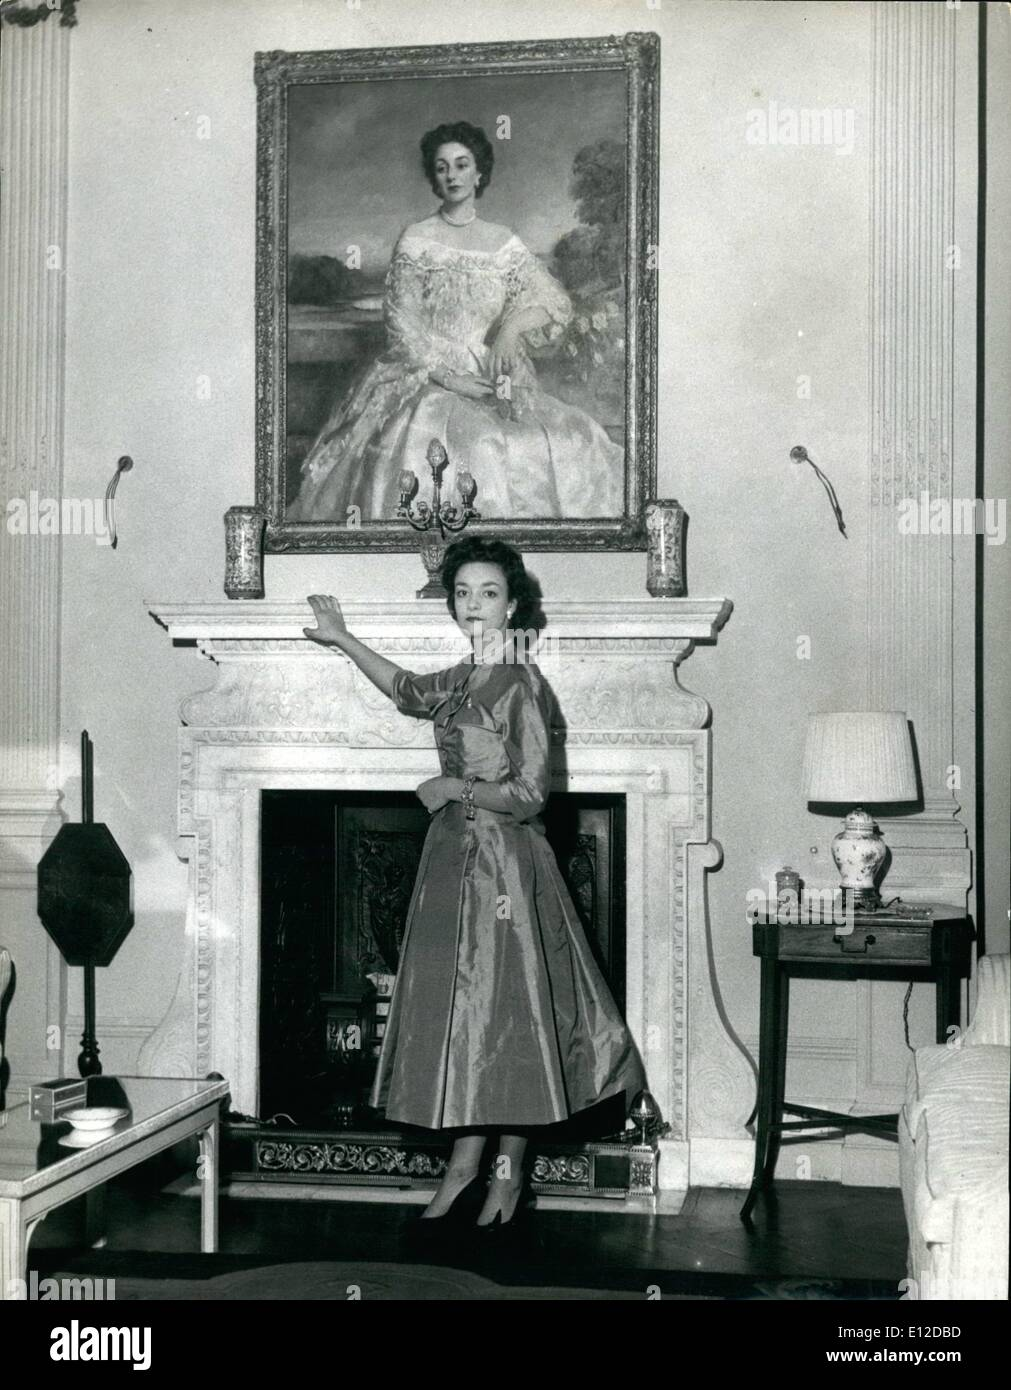 Dec. 19, 2011 - Lady Mary Baillie-Hamilton photographed in the drawing room of her London home in Tite Street, Chelsea. Over the mantelpiece is a portrait if her mother, the Countess of Haddington. She Will Attend The Queen On Coronation Day: Six beautiful girls whose ages range from 17 to 83 have been chosen by the Queen to be her Maids of Honour at the Coronation Service. Queen Victoria set the precedent when she was crowned. Maids of Honour instead of the usual Pages carried her train. The girls are being trained by Mary, Duchess of Devonshire, Mistress of the Robes to the Queen - Stock Image